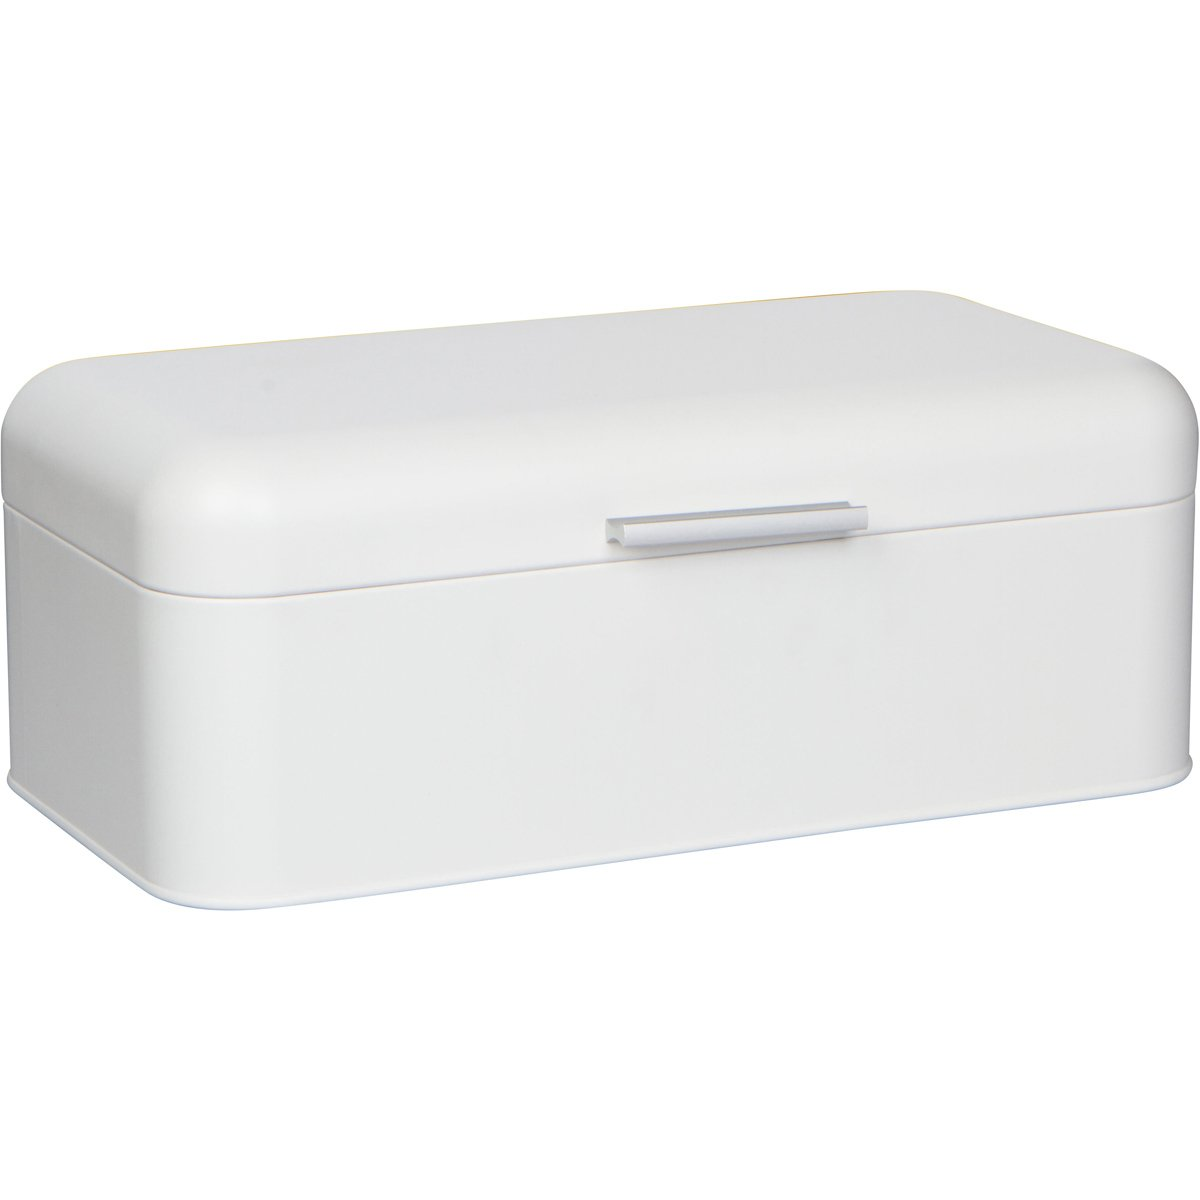 "Large White Bread Box - Countertop Bread Bin Storage - Size 16.5'' Length x 9'' x 6.5"" Height 